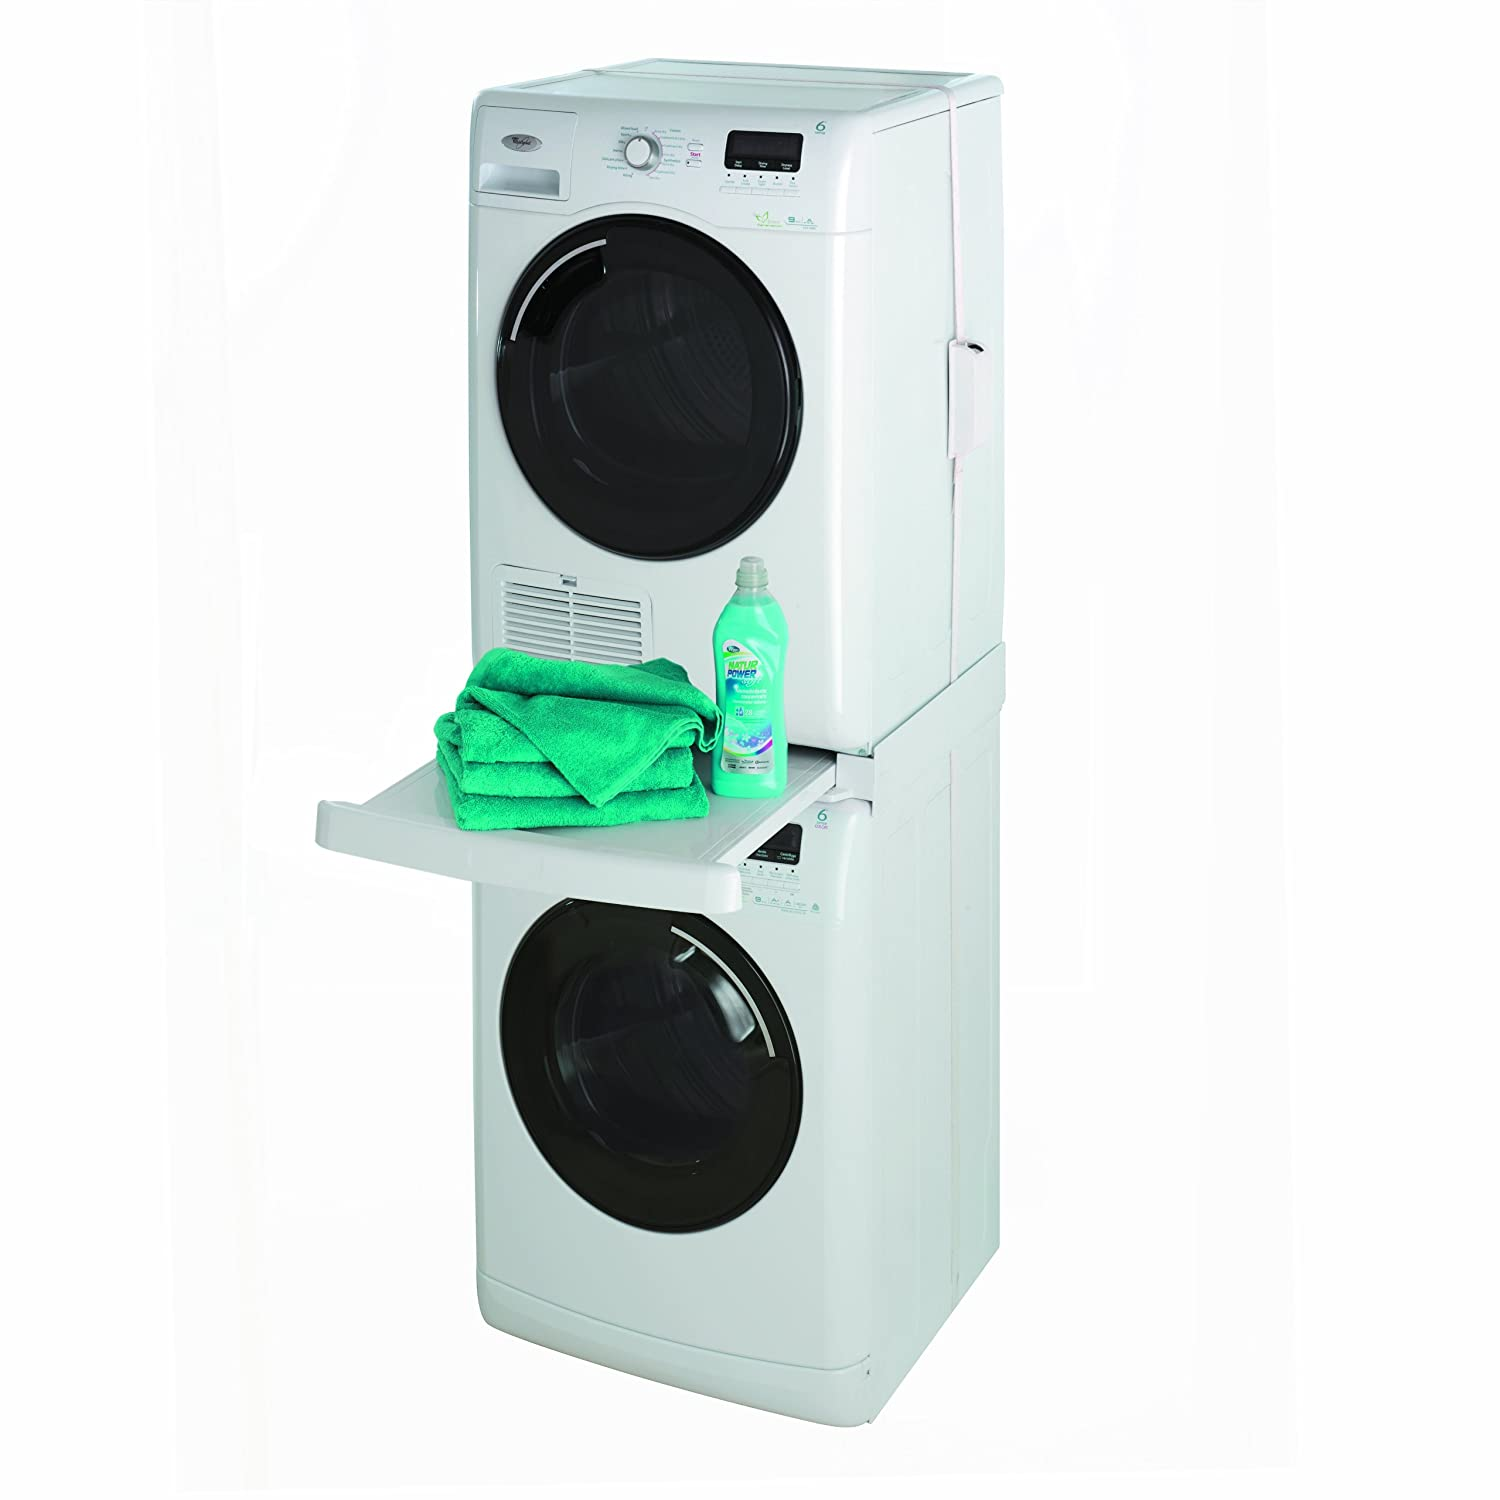 kit de superposition machine a laver et seche linge Wpro SKS 100 kit de superposition universel avec tablette pour lave-linge- seche-linge 60 x 60 cm: Amazon.fr: Cuisine u0026 Maison